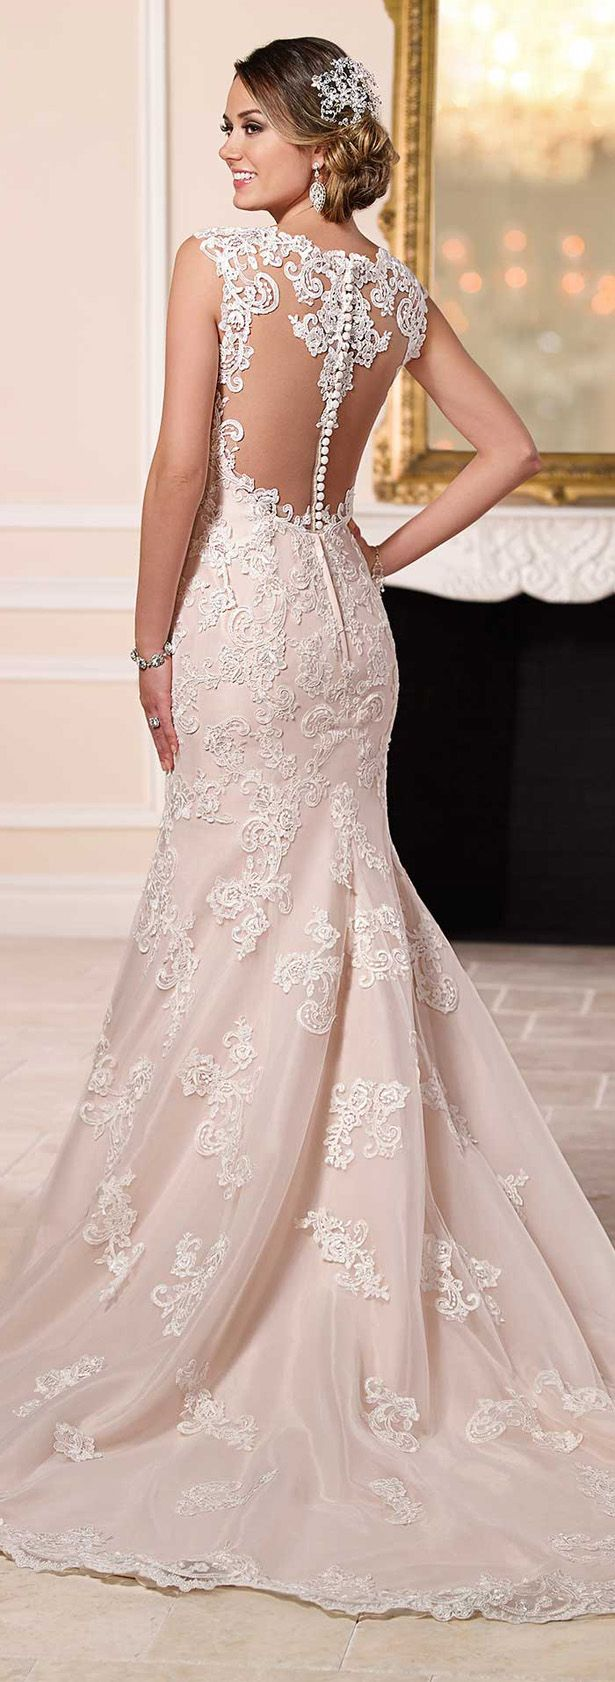 Top wedding ideas and color combos from wedding dresses